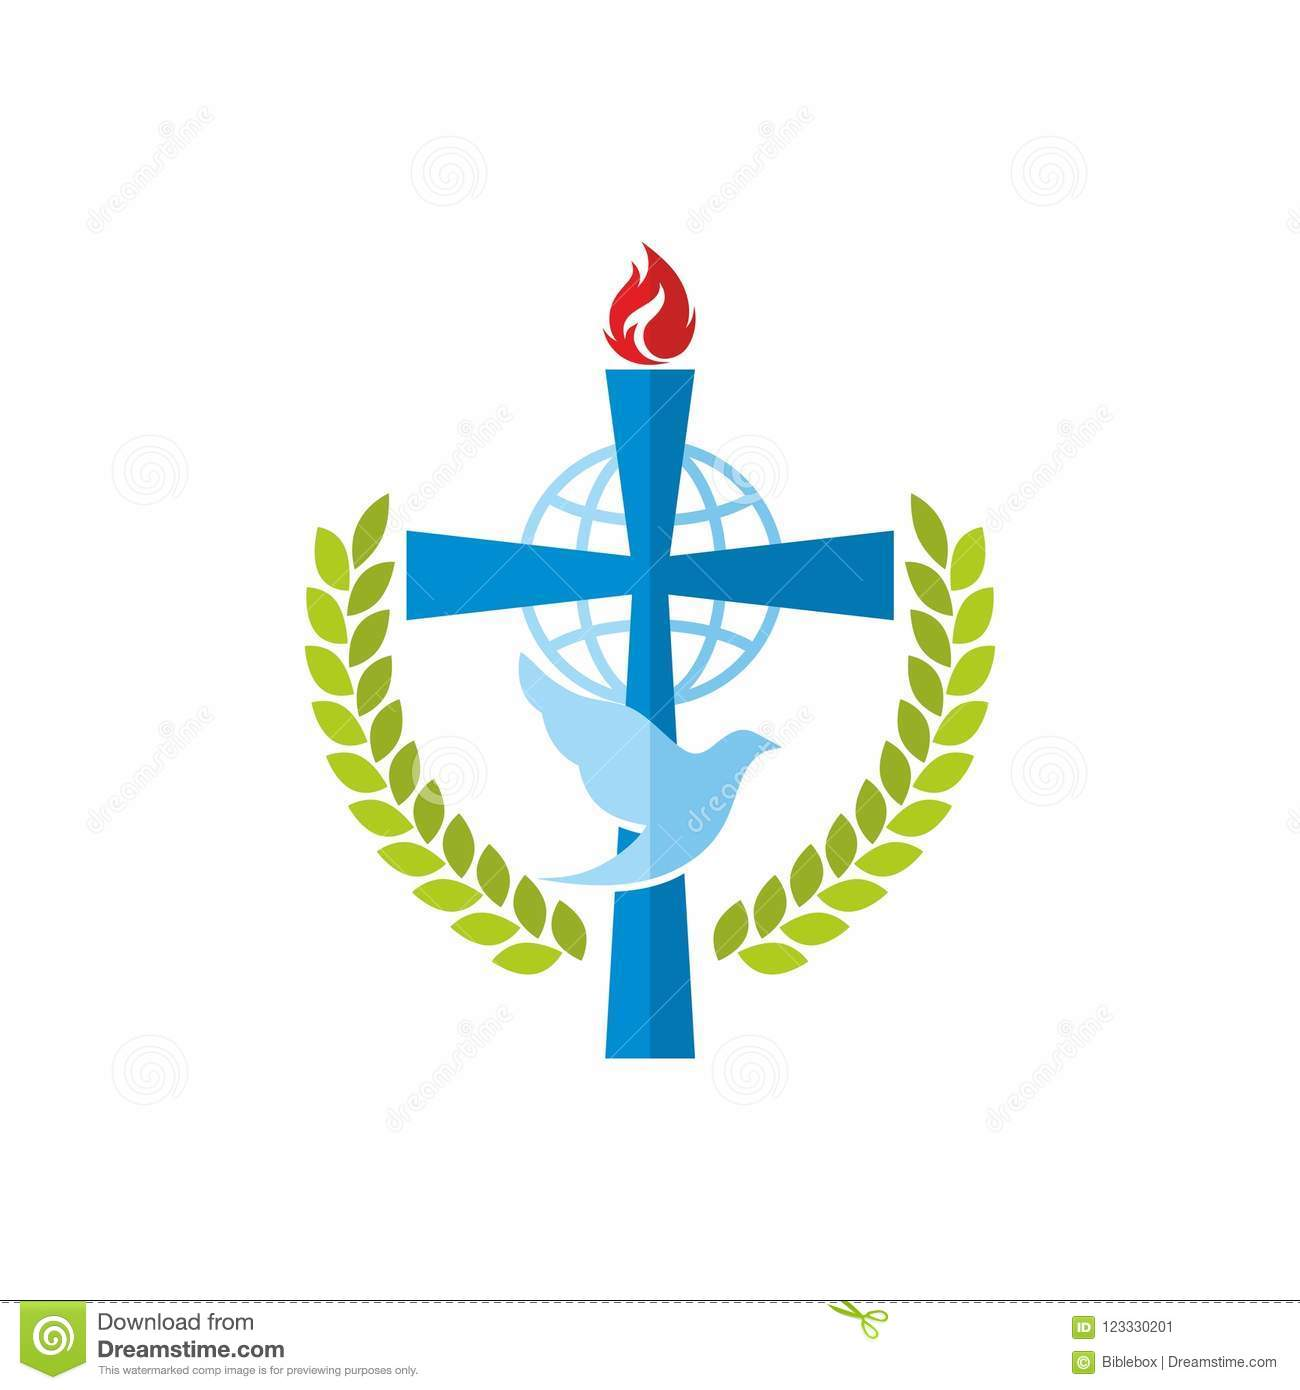 Church logo the cross of jesus the globe and the dove stock vector download church logo the cross of jesus the globe and the dove stock vector thecheapjerseys Gallery